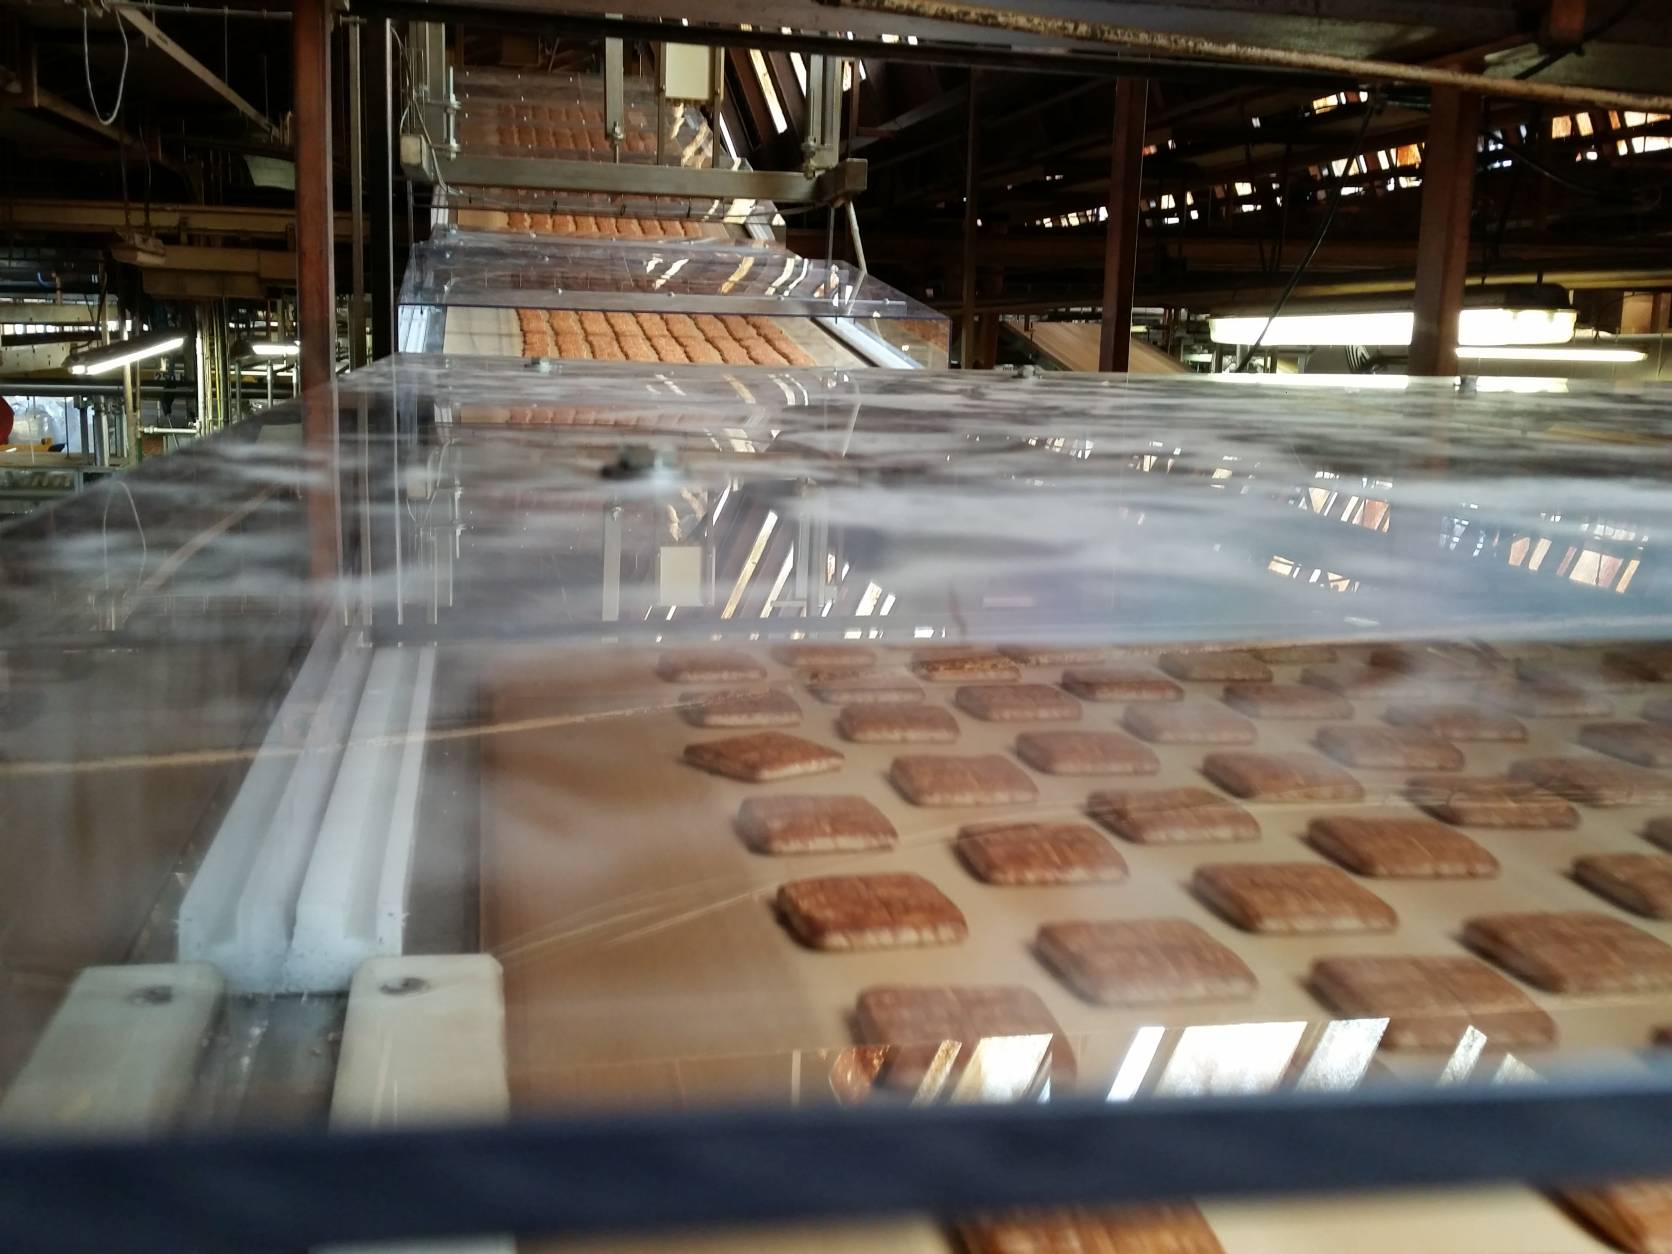 Narviplastx Telescopic Roofs in PC Transparant at Mondelez Factory Belgium (4)